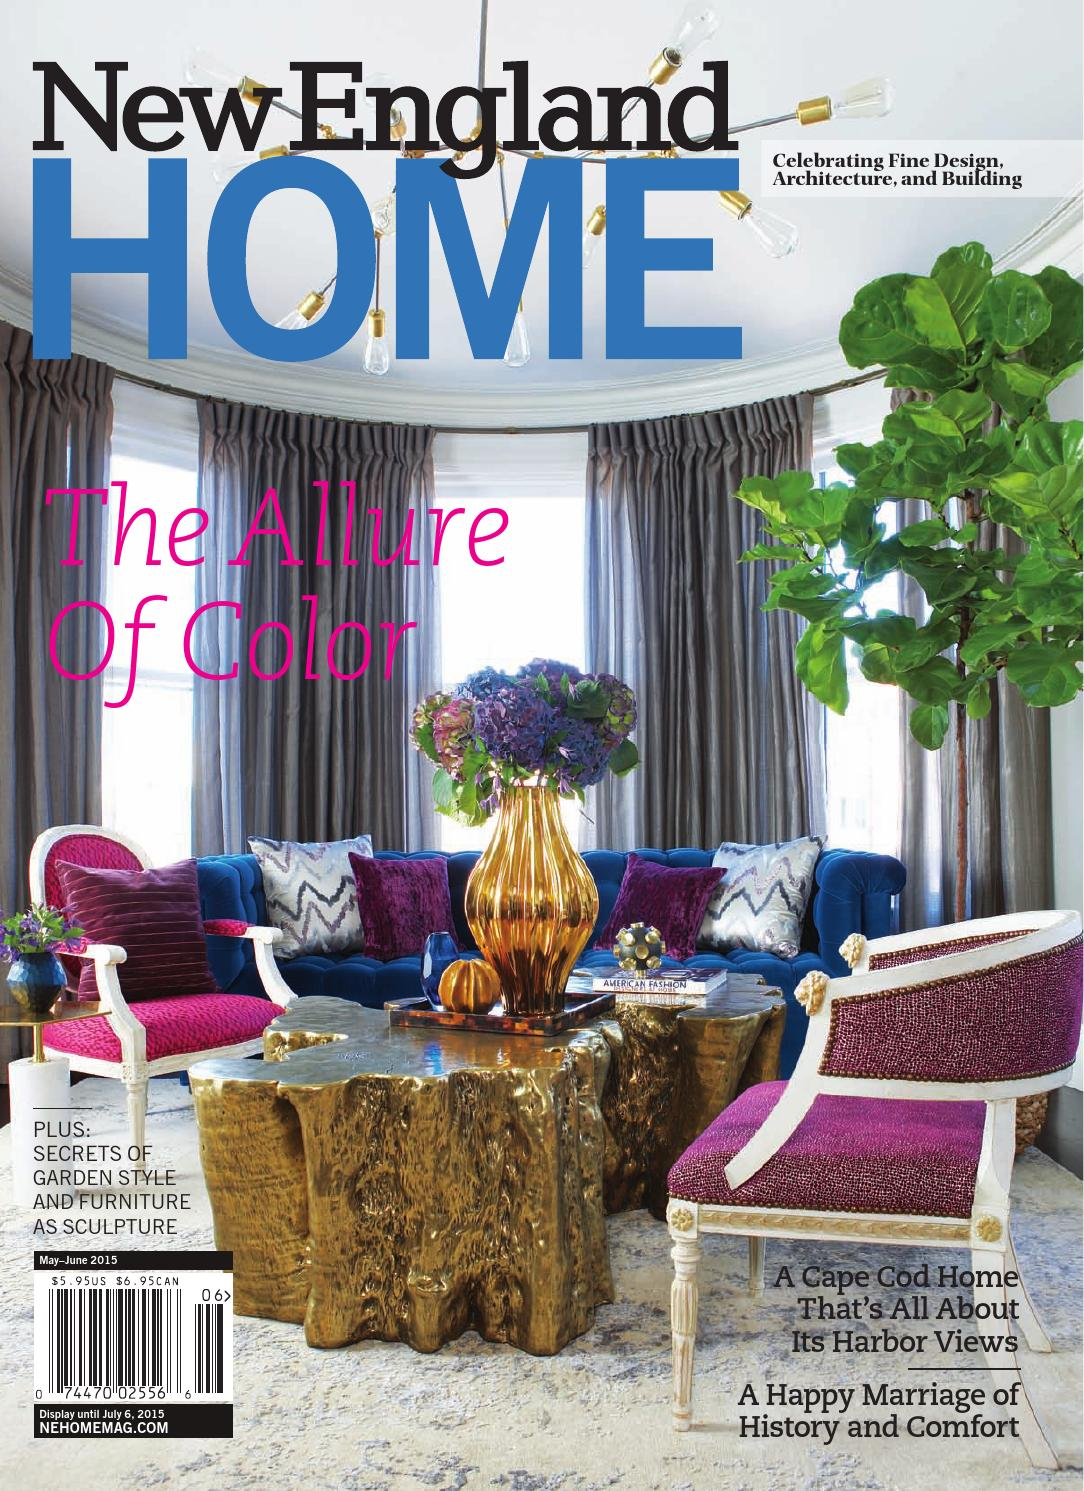 New england home march april 2015 by new england home magazine llc ...